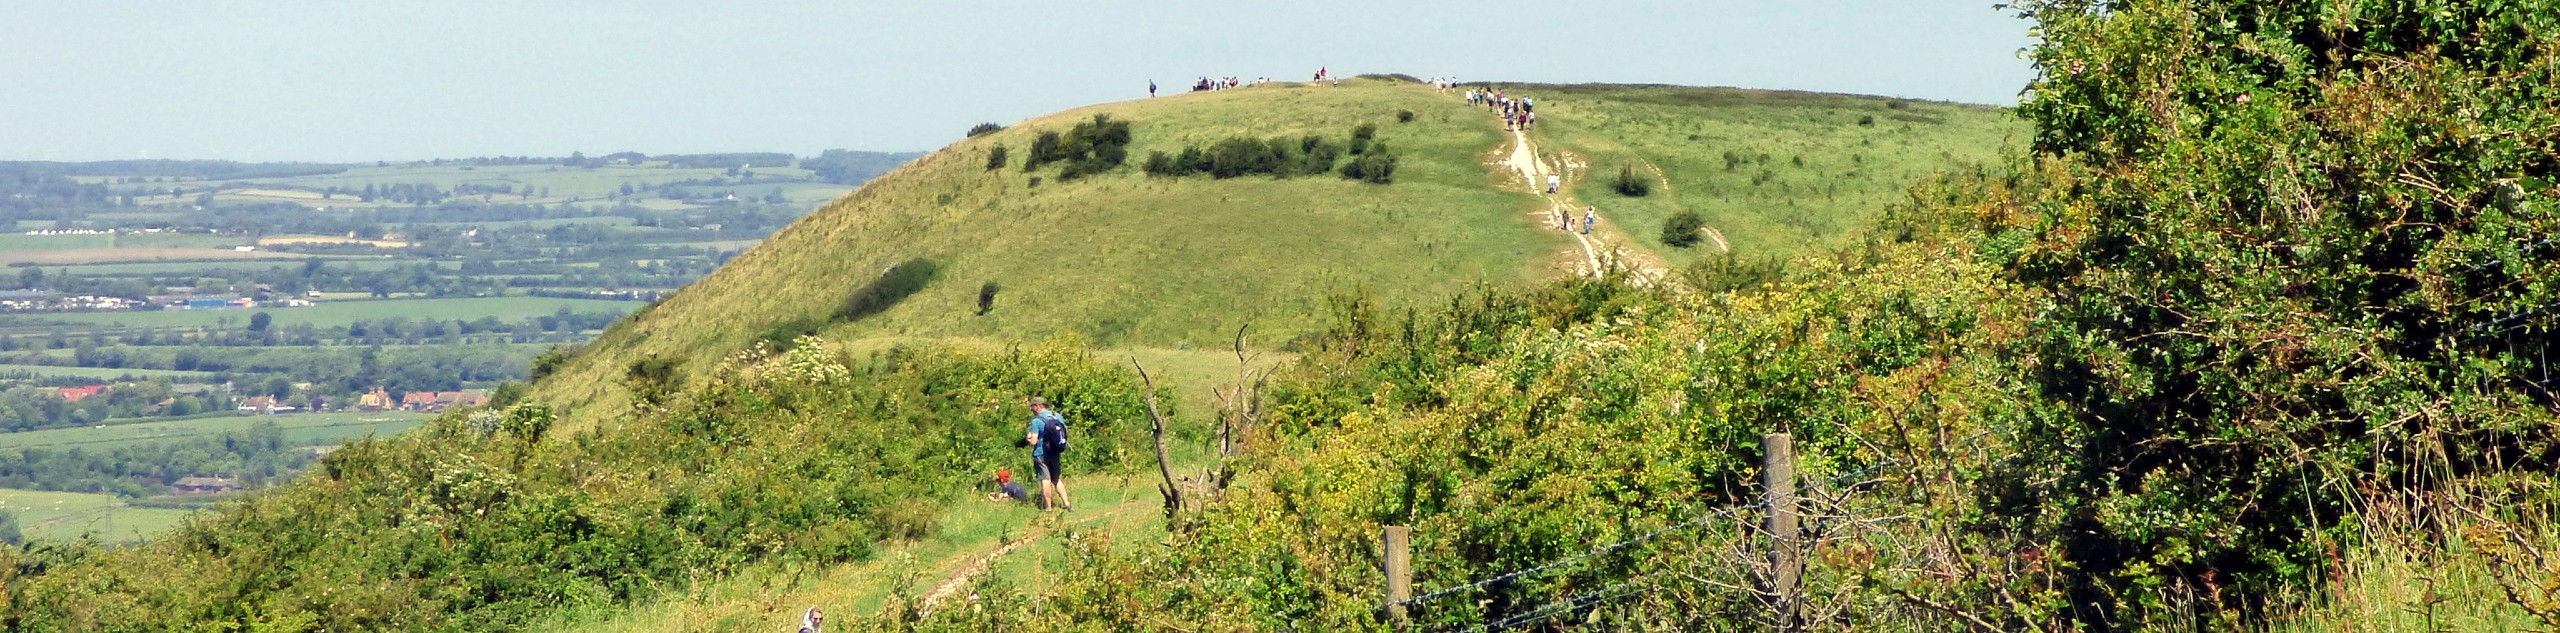 Ivinghoe Beacon Extended